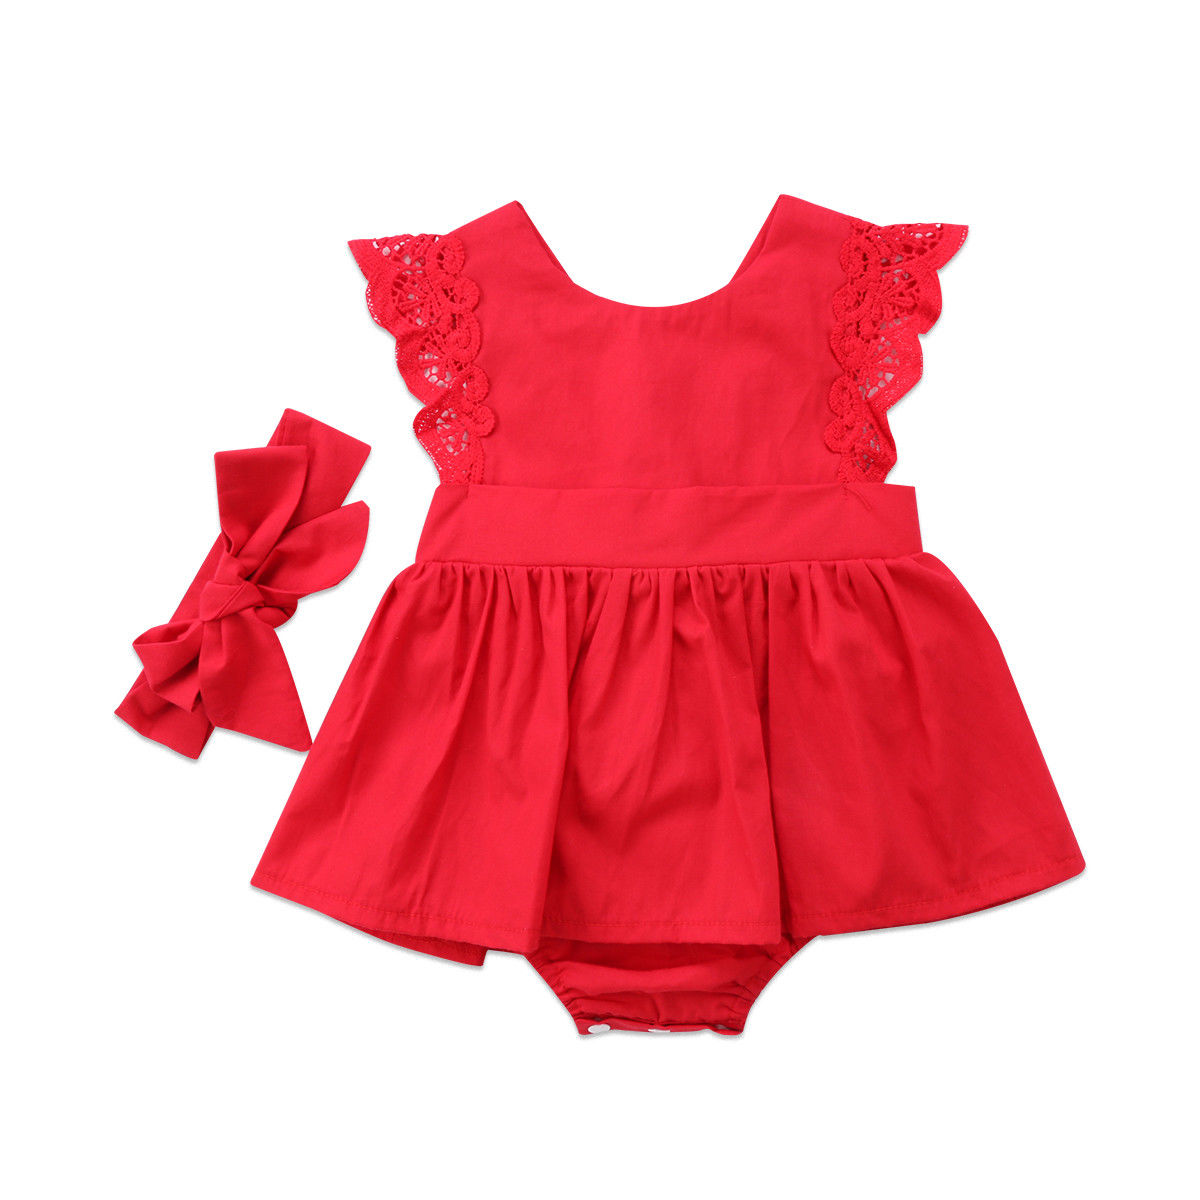 66514f687247 Dress For Girls Baby Girls Red Romper Dresses 2017 New Year s Jumpsuit Lace  Backless Vestido Baby